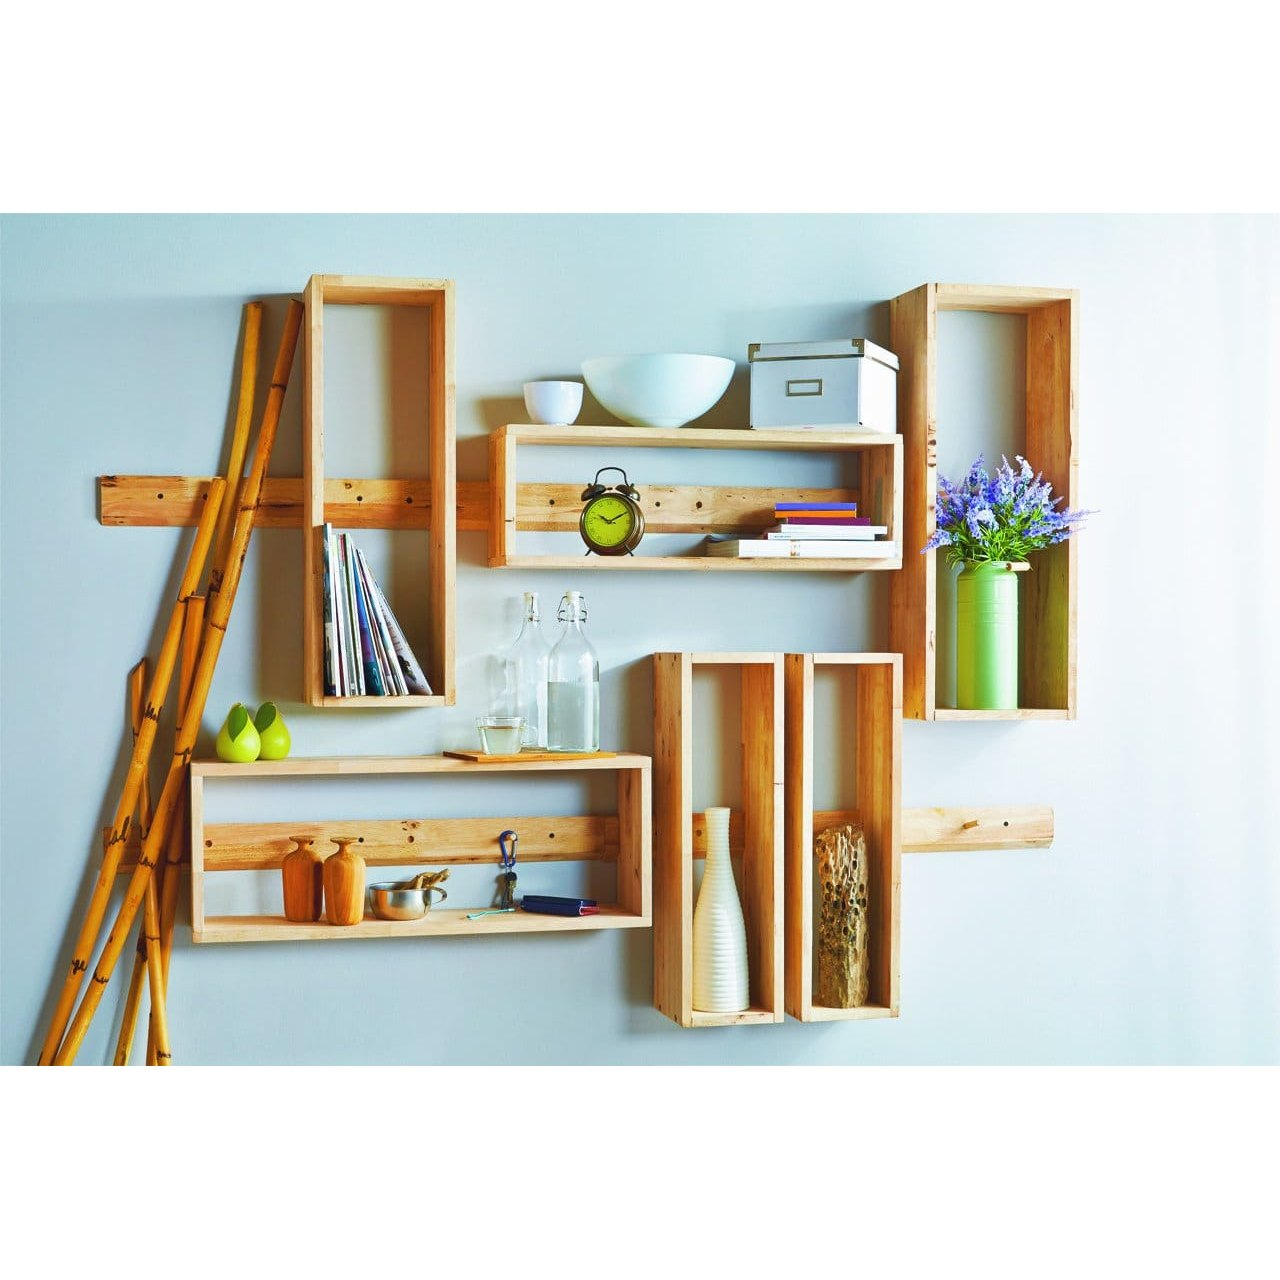 Wall Shelf Design Aziz Wall Shelf 3 Rectangles Comfort Design The Chair